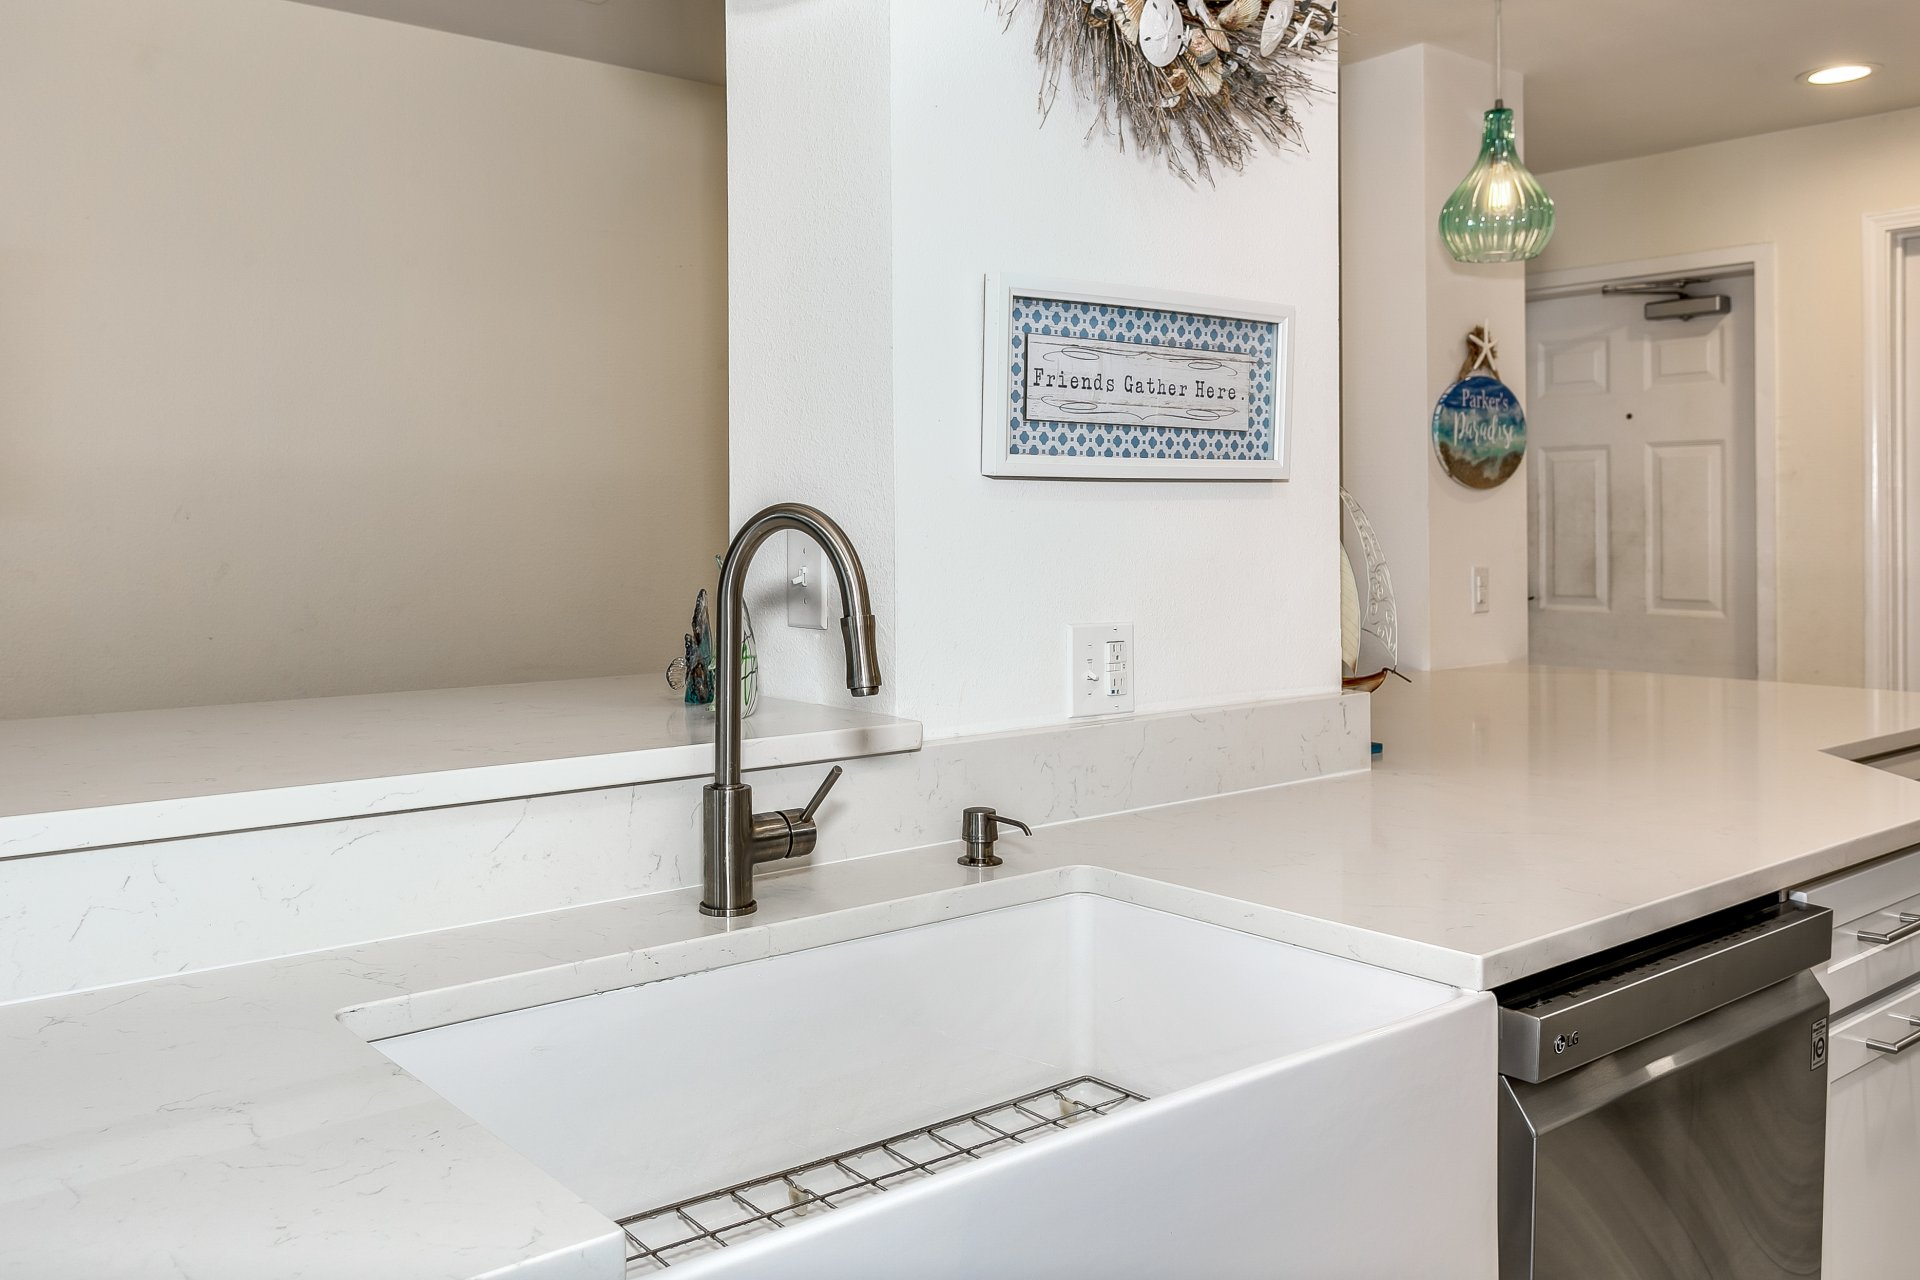 Contemporary farmhouse sink in condo kitchen remodel